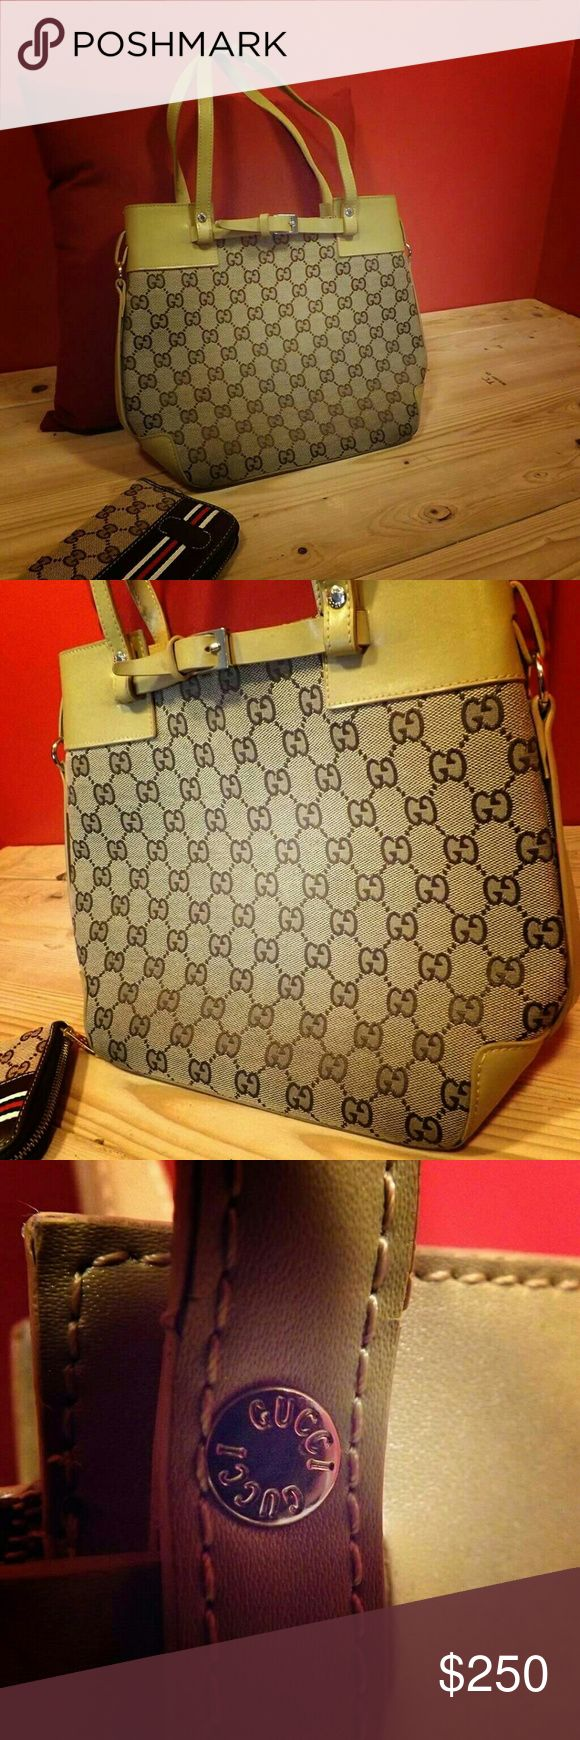 """Gucci shoulder purse Gucci purses are one of the only brands that have a common phrase based on it! """"Its Gucci"""", meaning its good! Well that's just what this is! This purse is Gucci! Small flaw up on the straps is the reason this purse is so cheap! We accept offers, always!  ✅SPECIAL OFFER: Bundling this purse with our Gucci wallet will give you a 25% discount! ✅✅ No other bundles apply!!! Gucci Bags Shoulder Bags"""